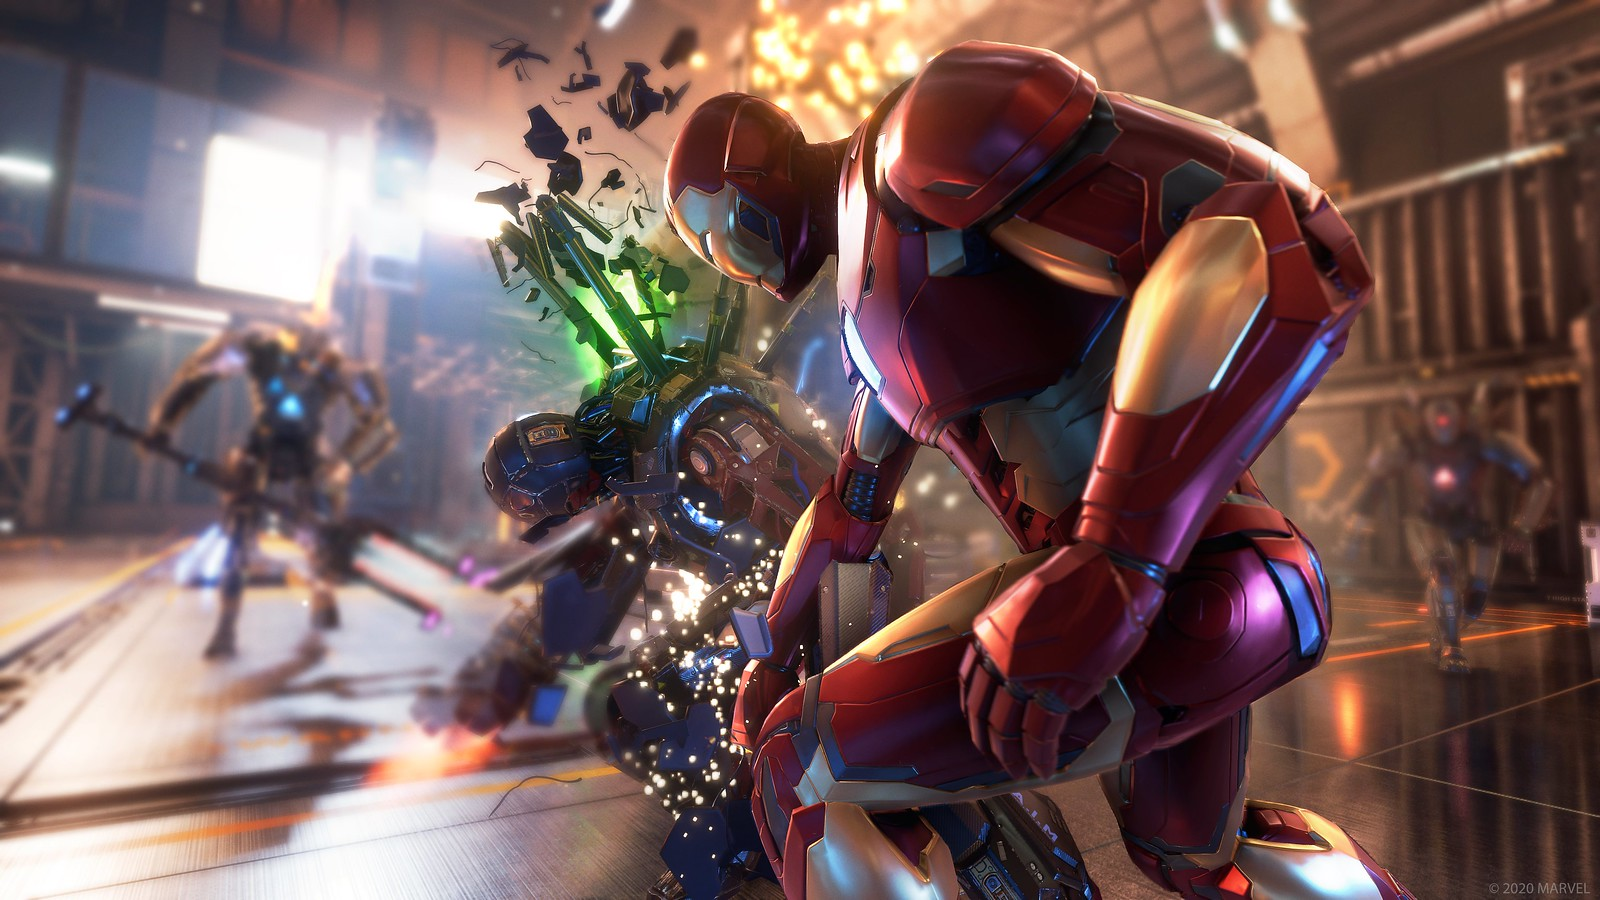 Square Enix will reveal more details about Marvel's Avengers on July 29th